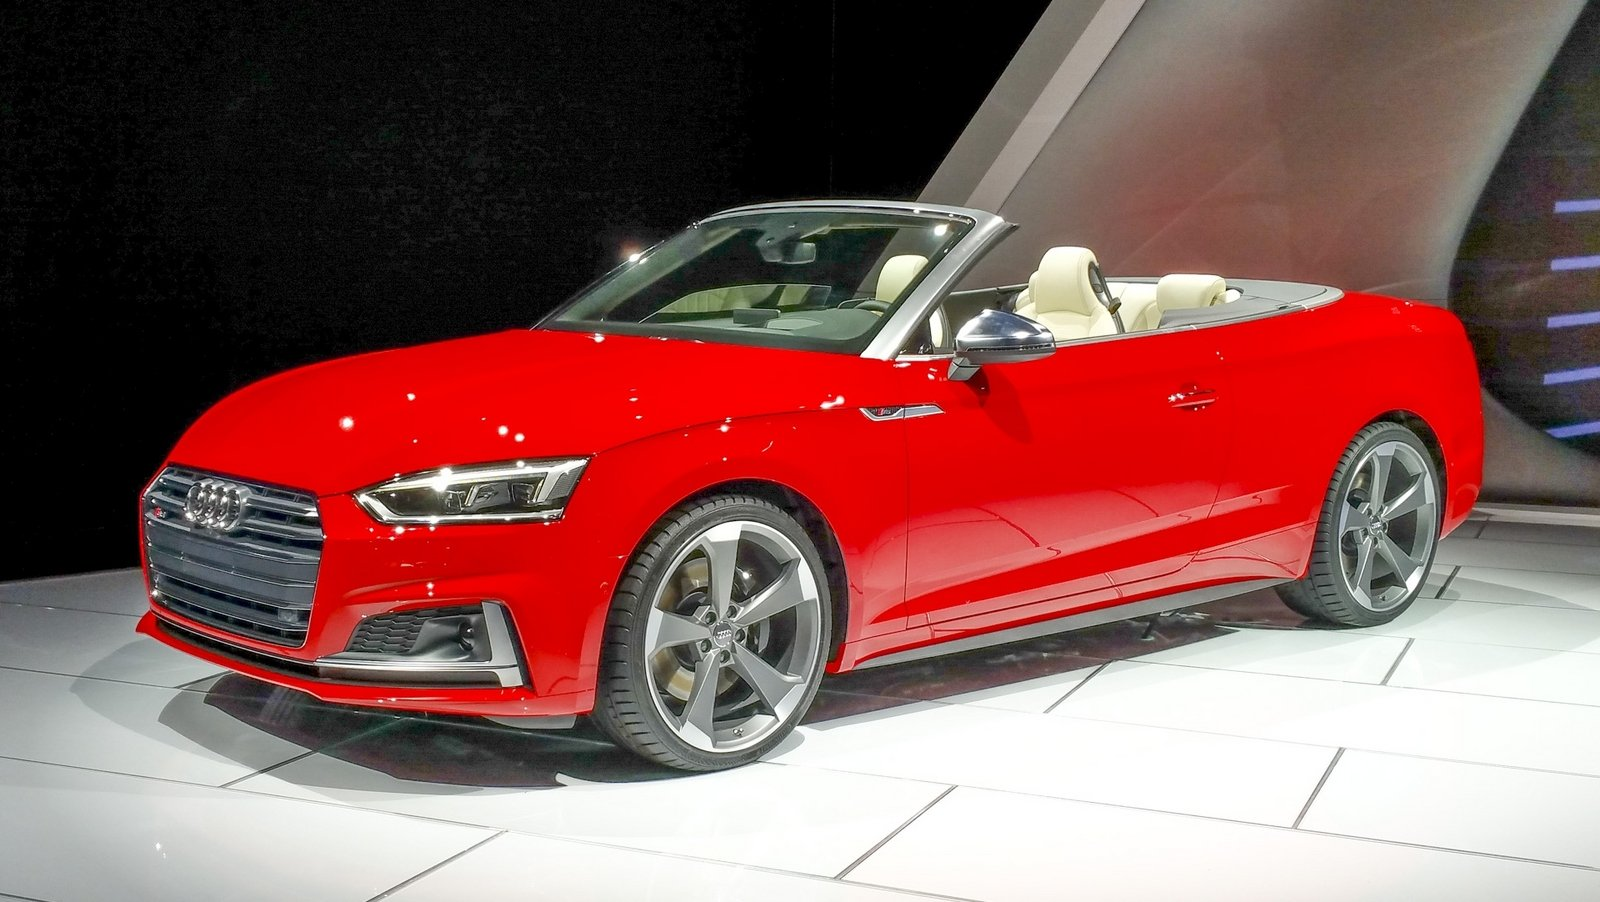 2017 audi s5 cabriolet review top speed. Black Bedroom Furniture Sets. Home Design Ideas